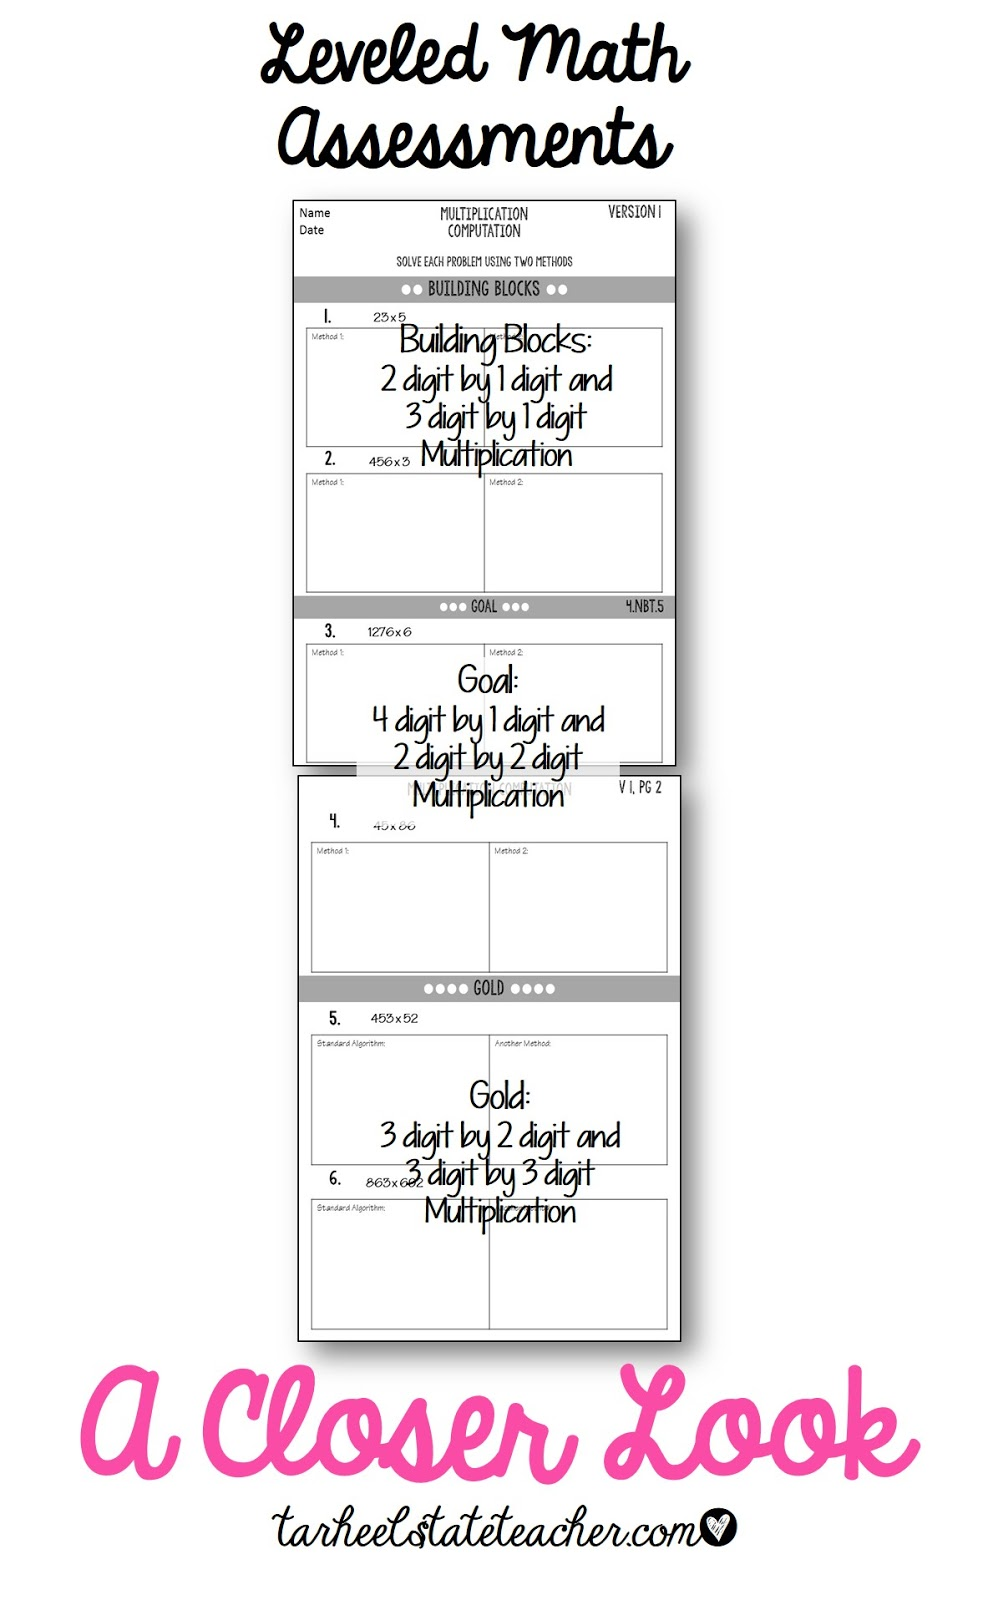 Workbooks Interpreting The Remainder Worksheets Free Printable